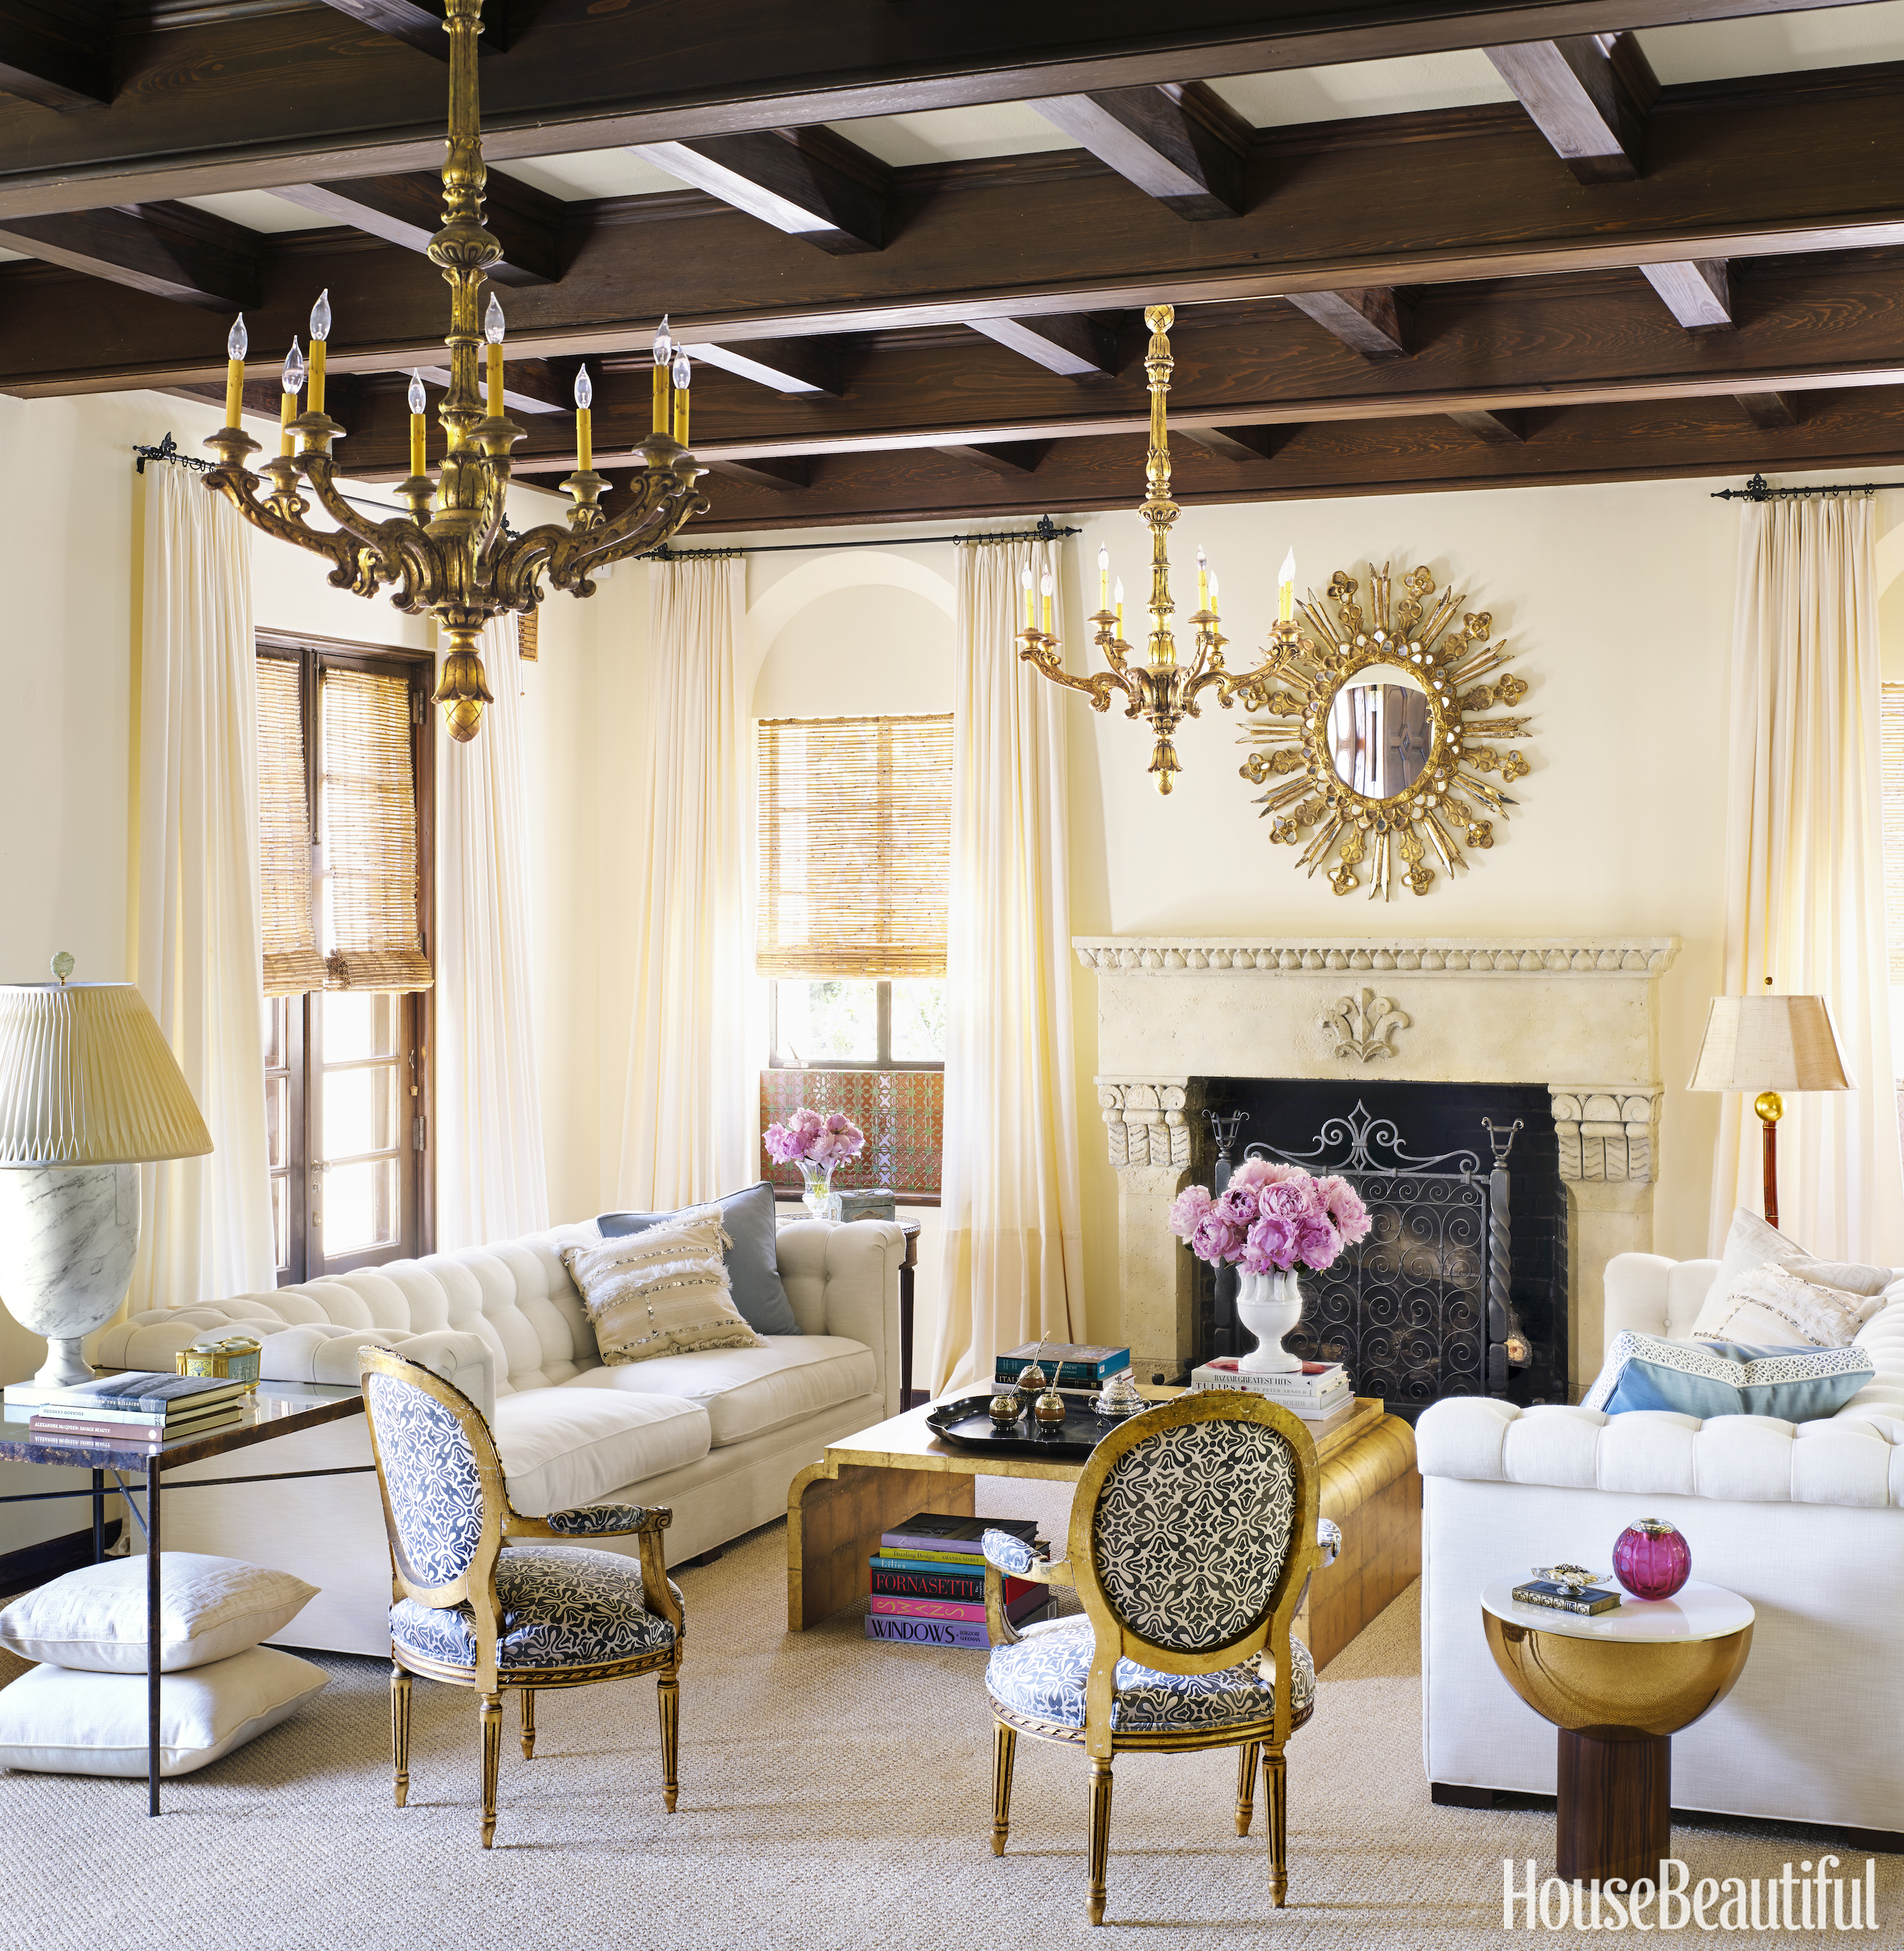 12 Inspirations For Home Improvement With Spanish Home Decorating Ideas: Leigh Anne Muse And Lili O'Brien